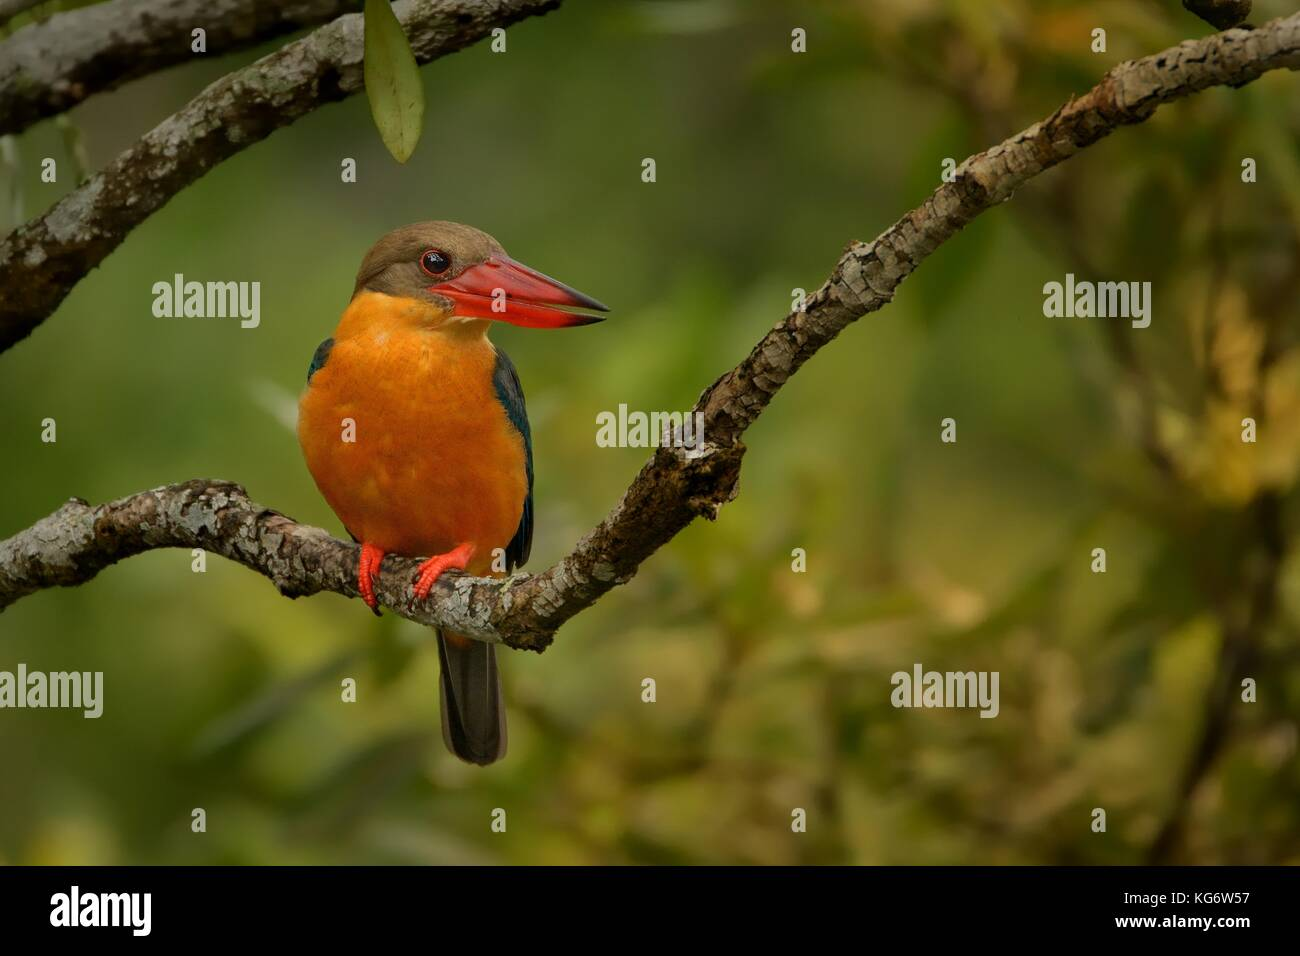 Stork-billed Kingfisher (Pelargopsis capensis) on the branch in Singapore - Stock Image